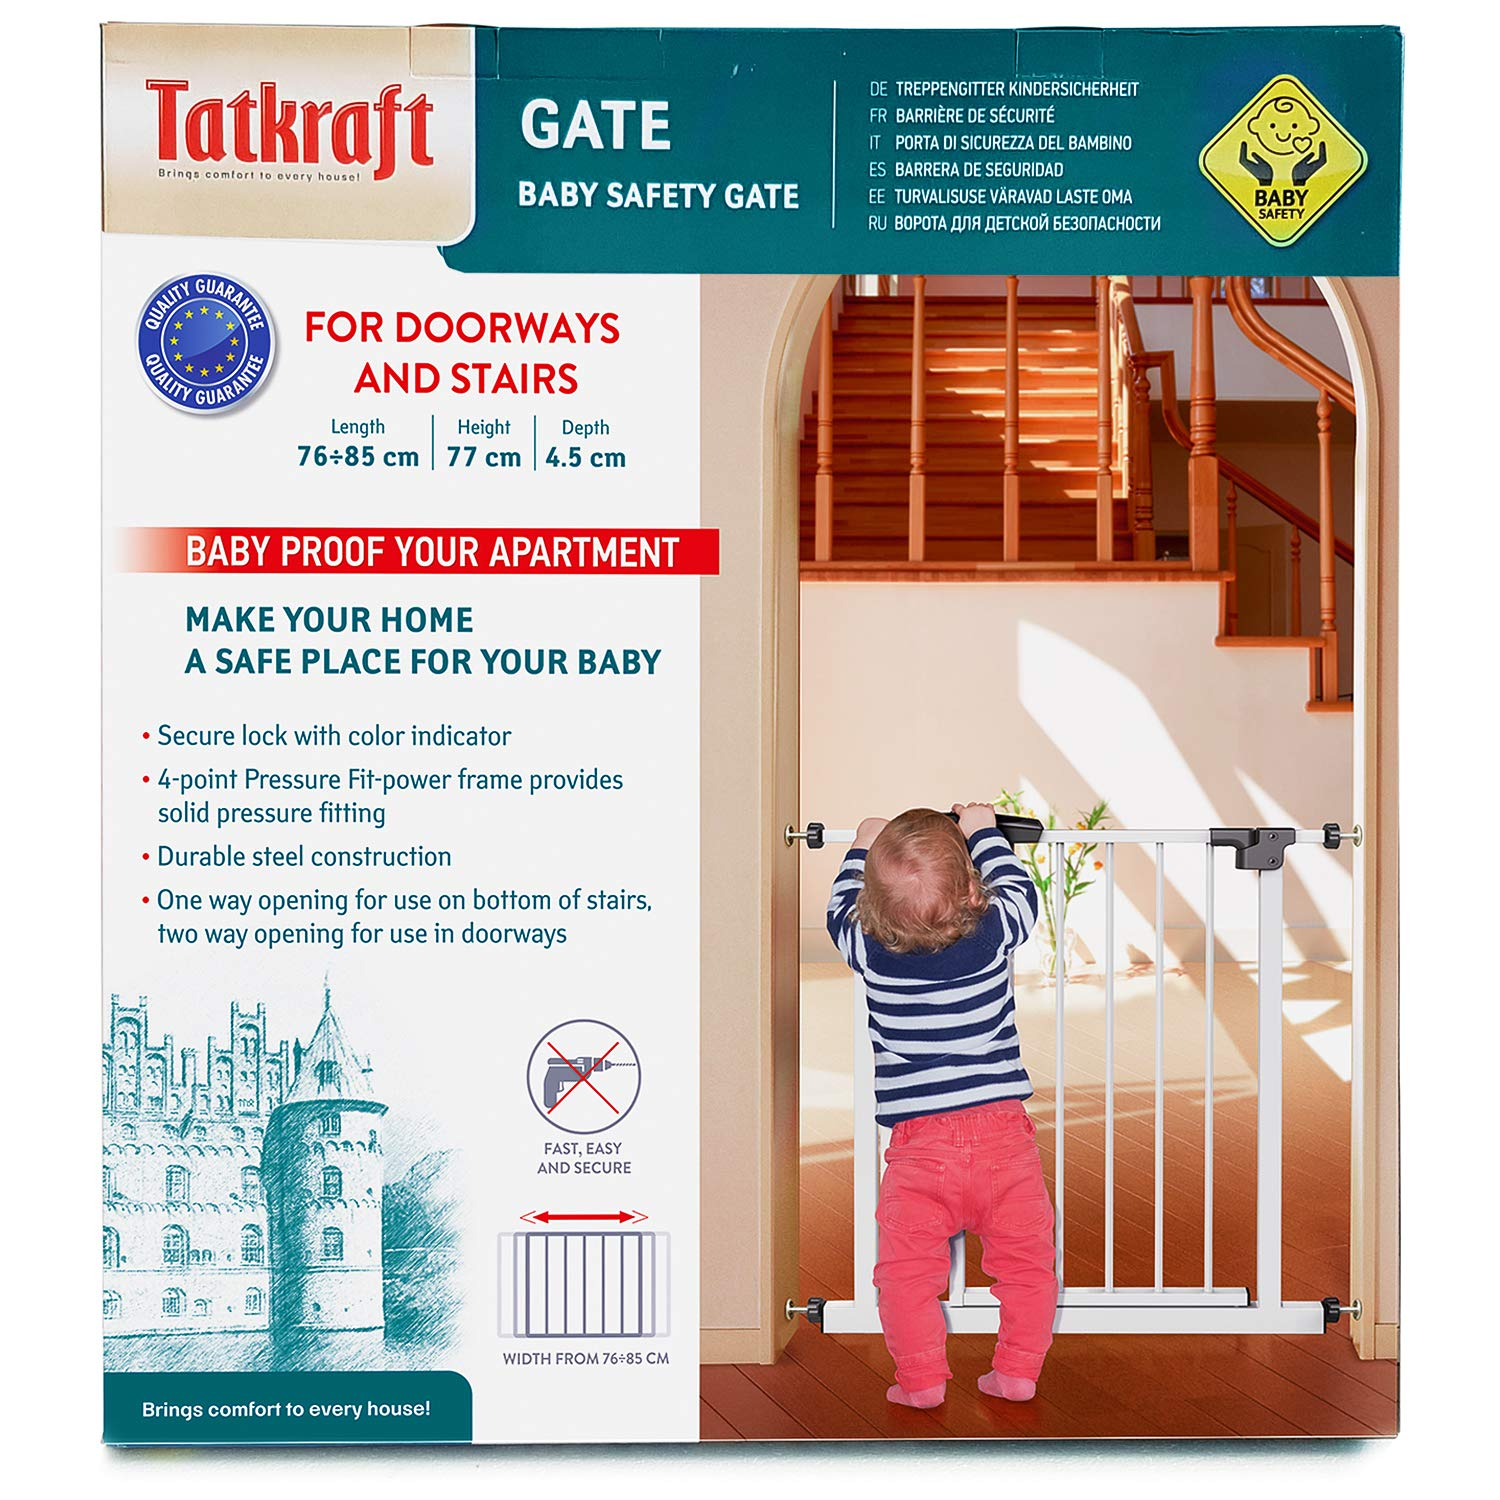 Tatkraft Adjustable Baby Gate for Stairs and Doorways with OpenClose Indicator, Durable Retractable Safety Gate Pressure Fit, Dimensions: 29.9-33.5 X 30.3 X 1.8 inchs, Durable Steel, White